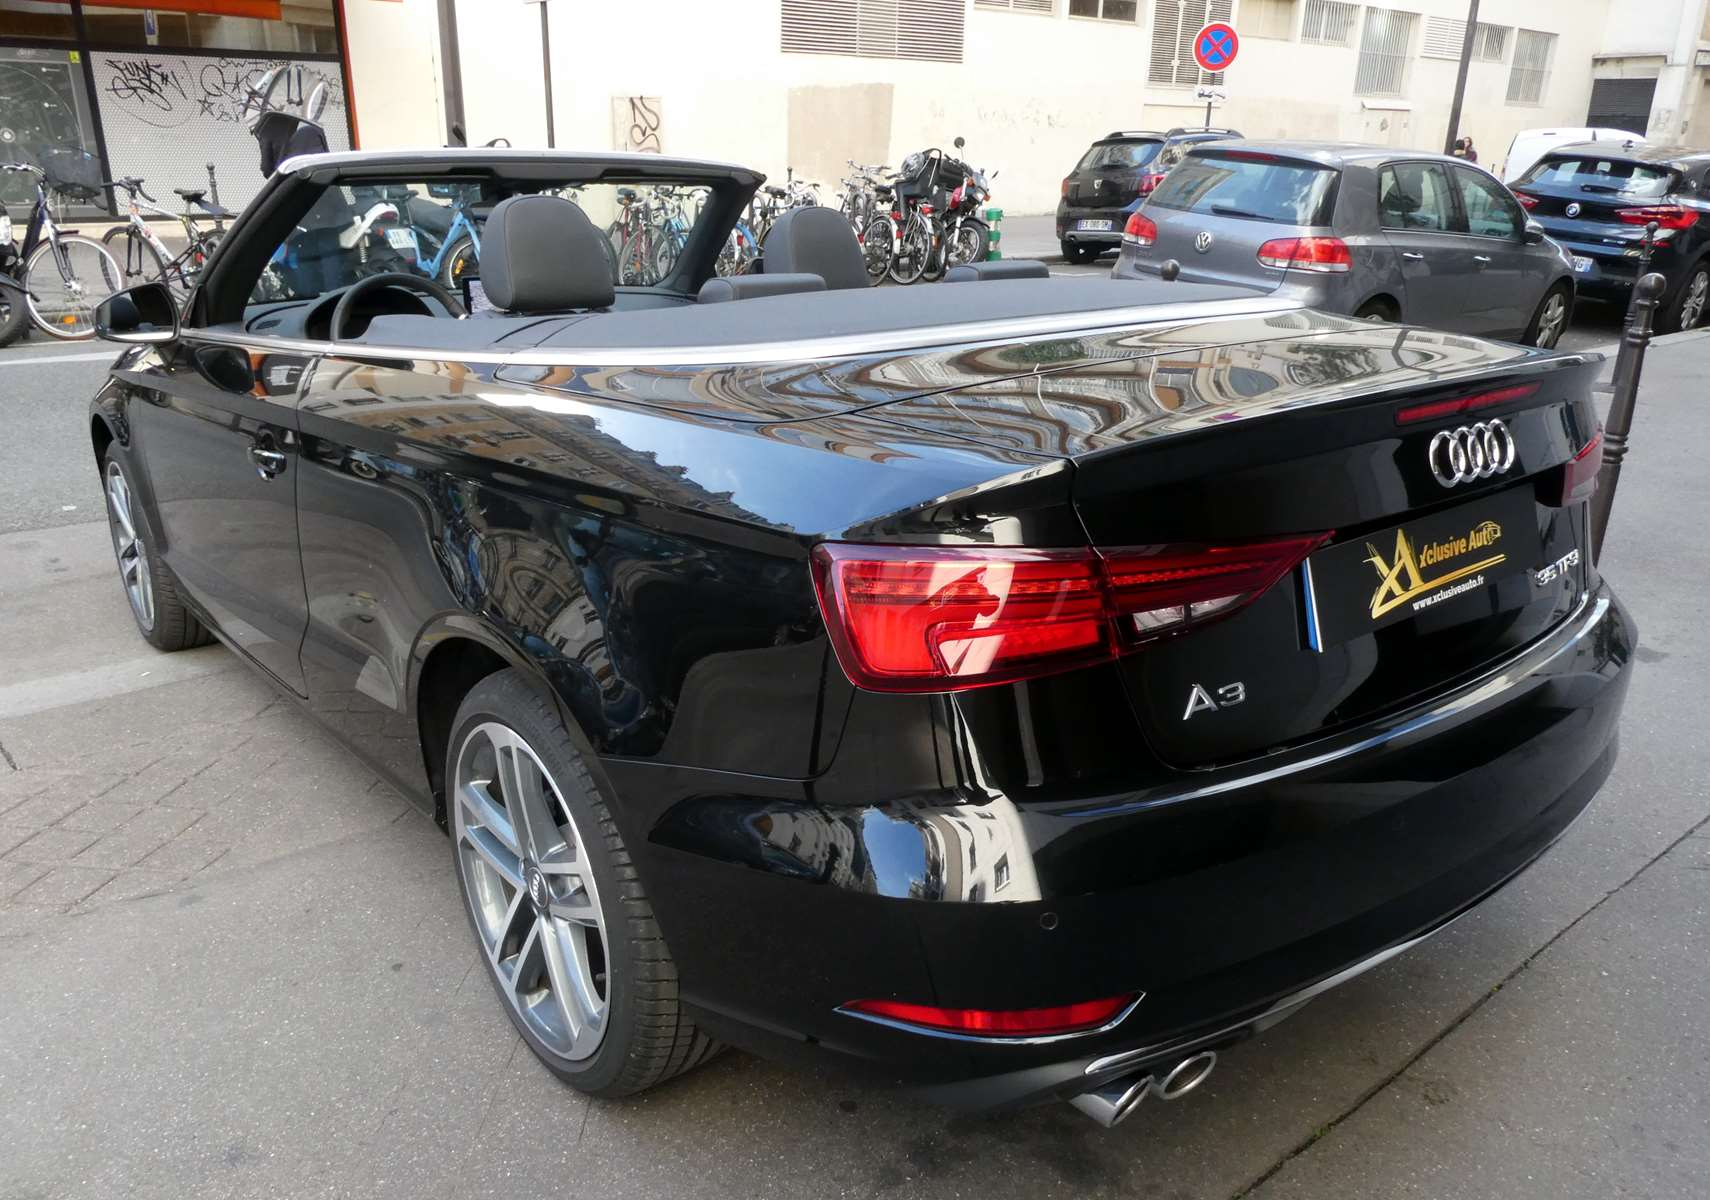 Audi A3 (2) cabriolet 35 TFSI 150 Design luxe S tronic 7 11